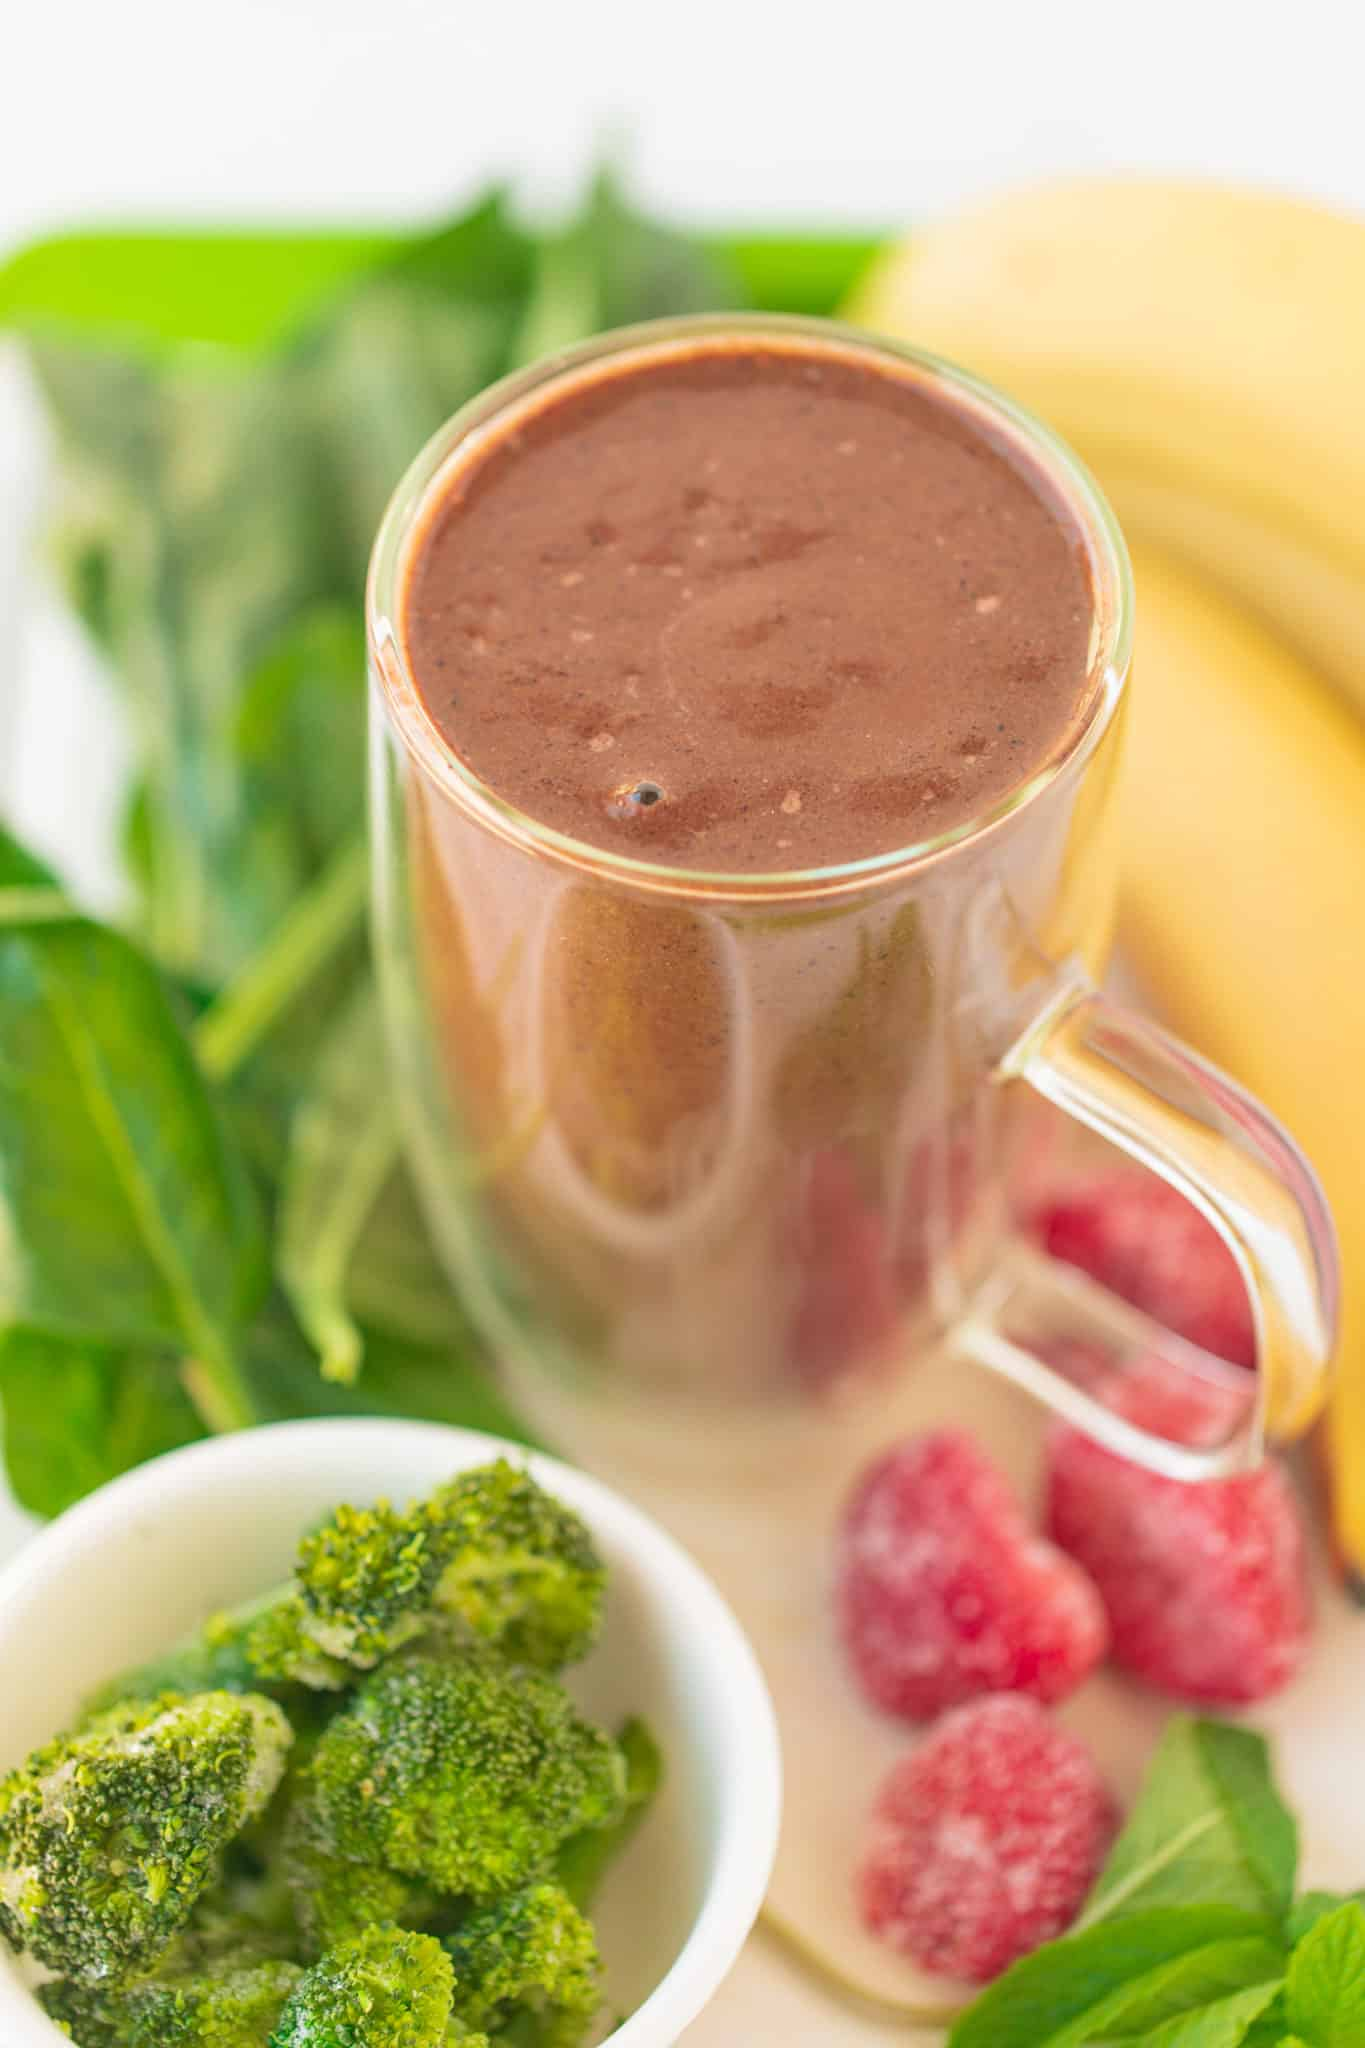 dark pink smoothie served in a glass surrounded by broccoli, greens, bananas, and strawberries